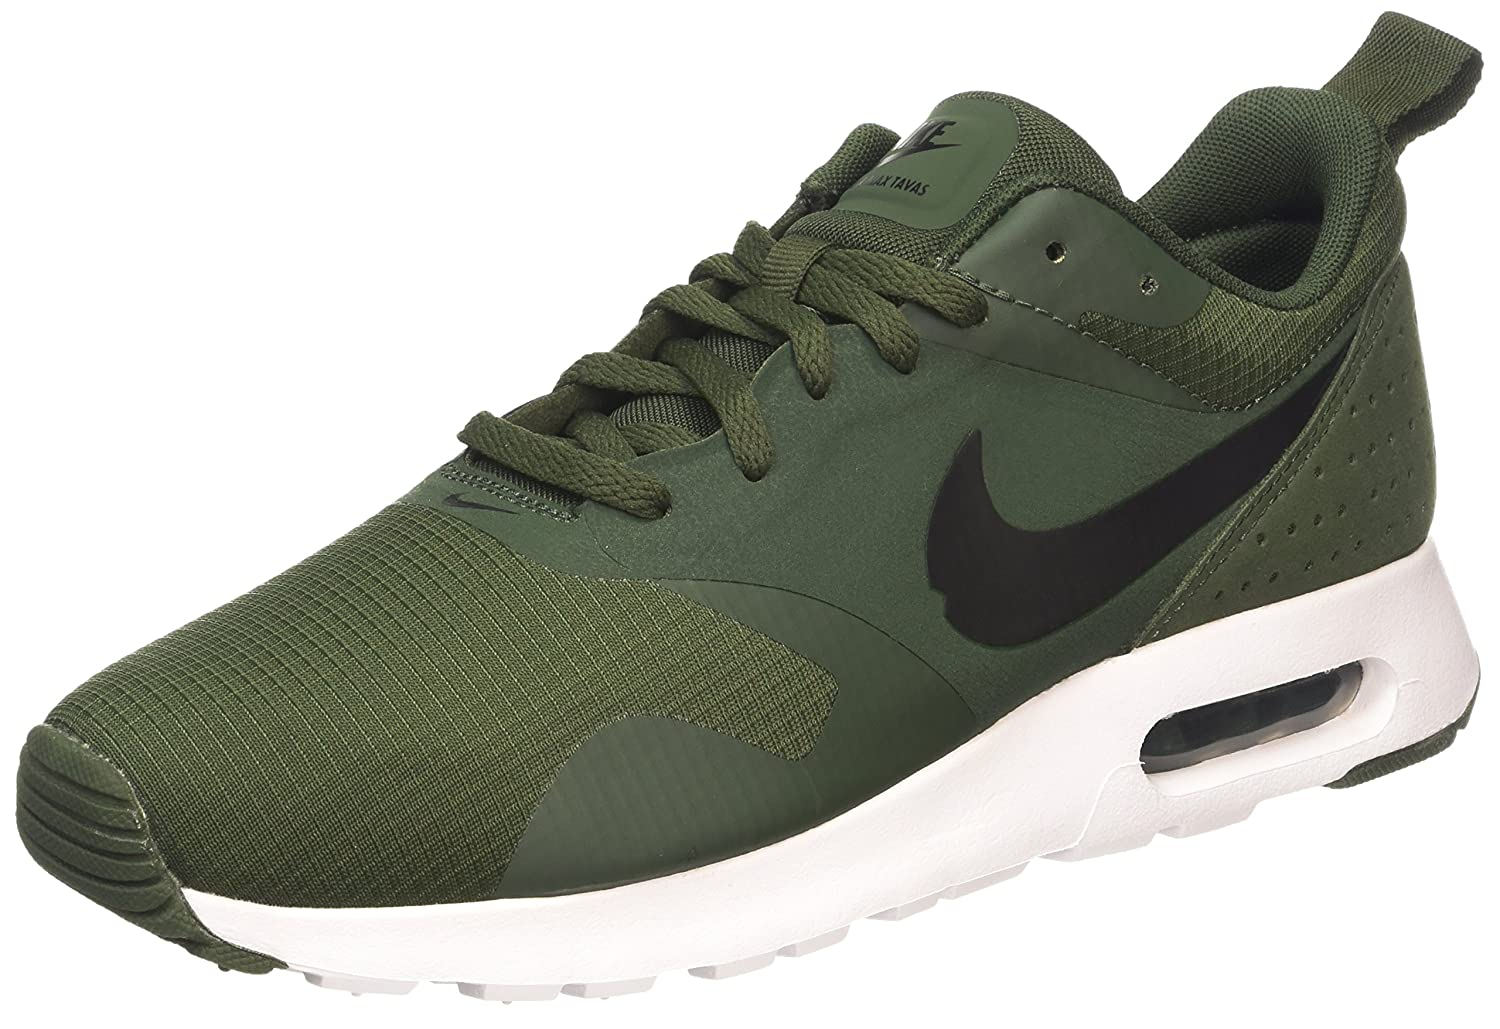 Nike Air Max Tavas Mens Running Trainers 705149 Sneakers